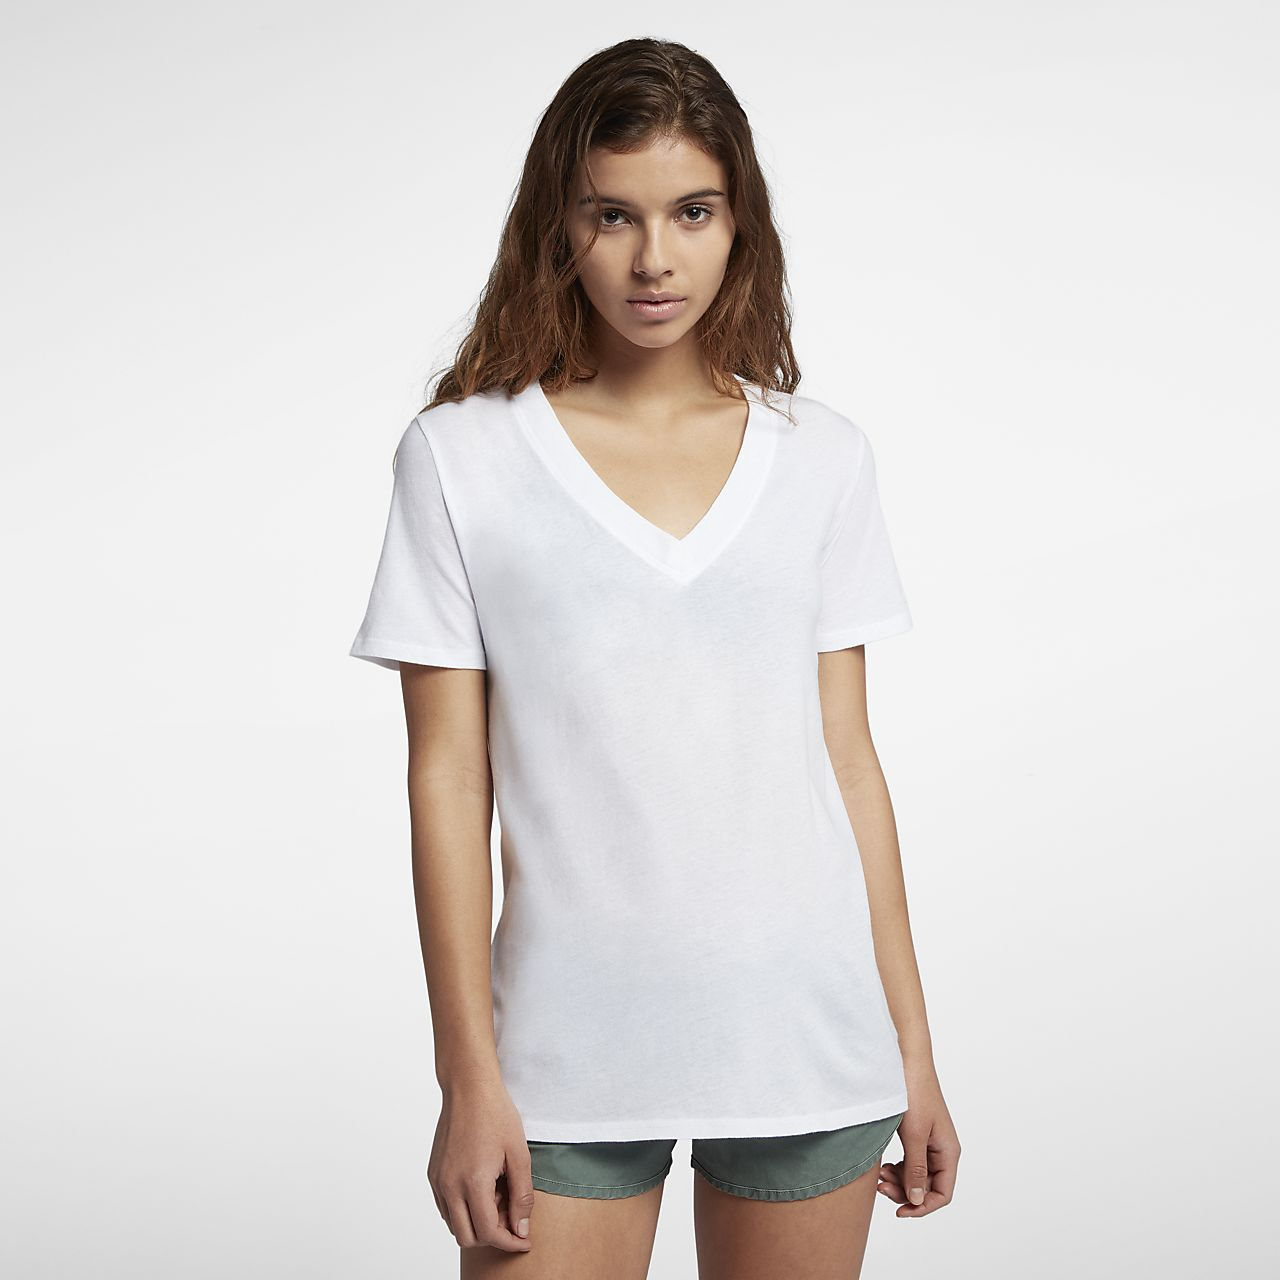 Hurley perfect women 39 s v neck t shirt for Womens v neck t shirts